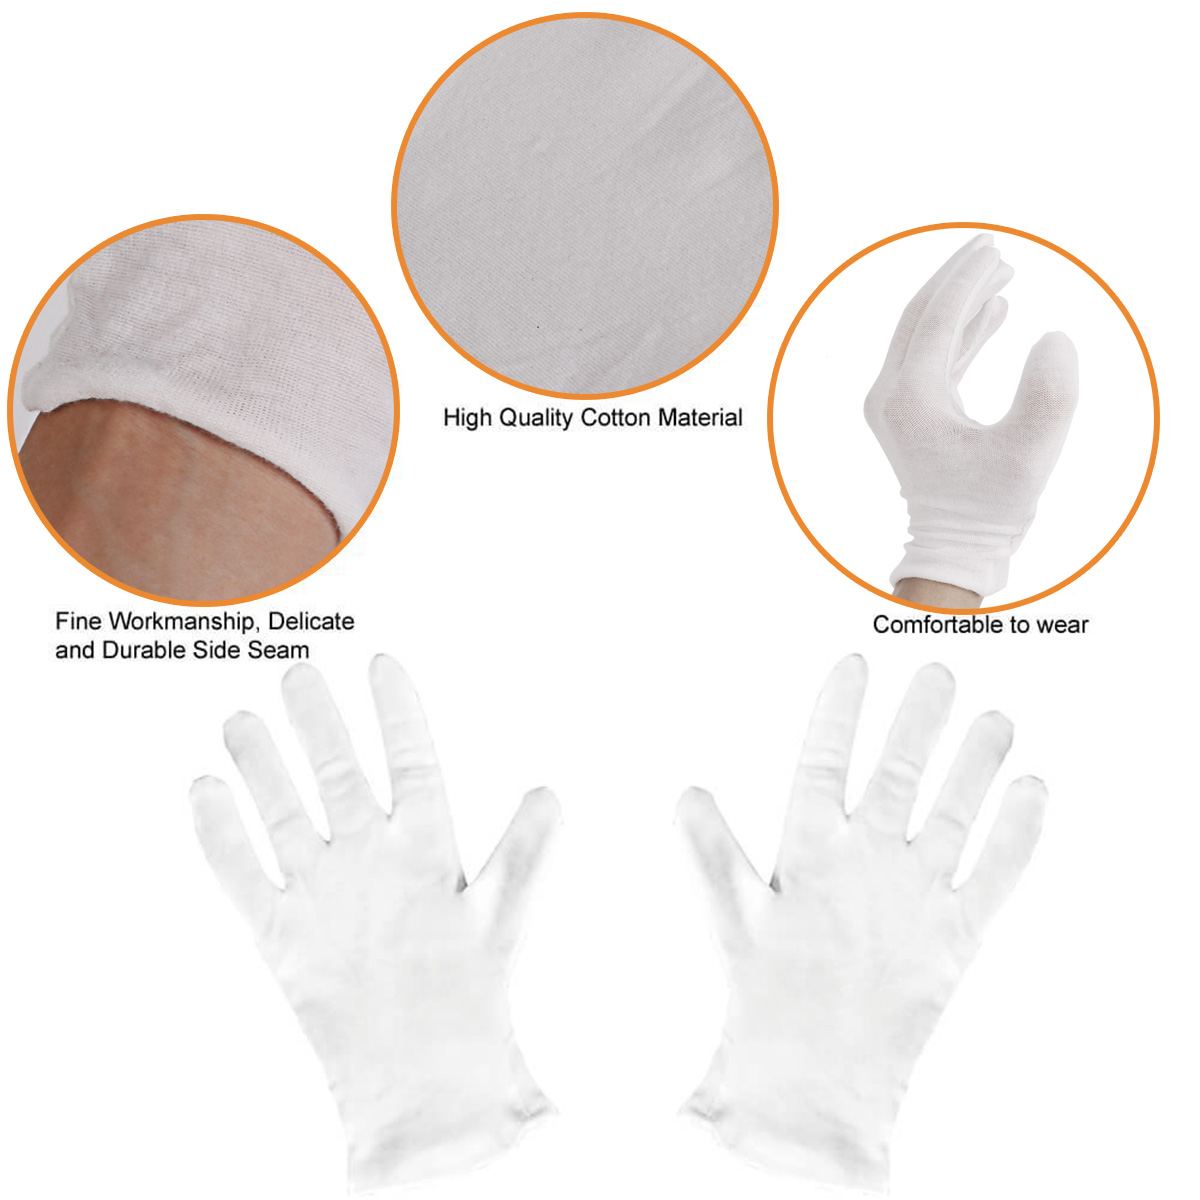 12 Pairs White Thin Reusable Elastic Soft Cotton Gloves Dry Hands Moisturizing Cosmetic Hand Spa Coin Jewelry Inspection Glove